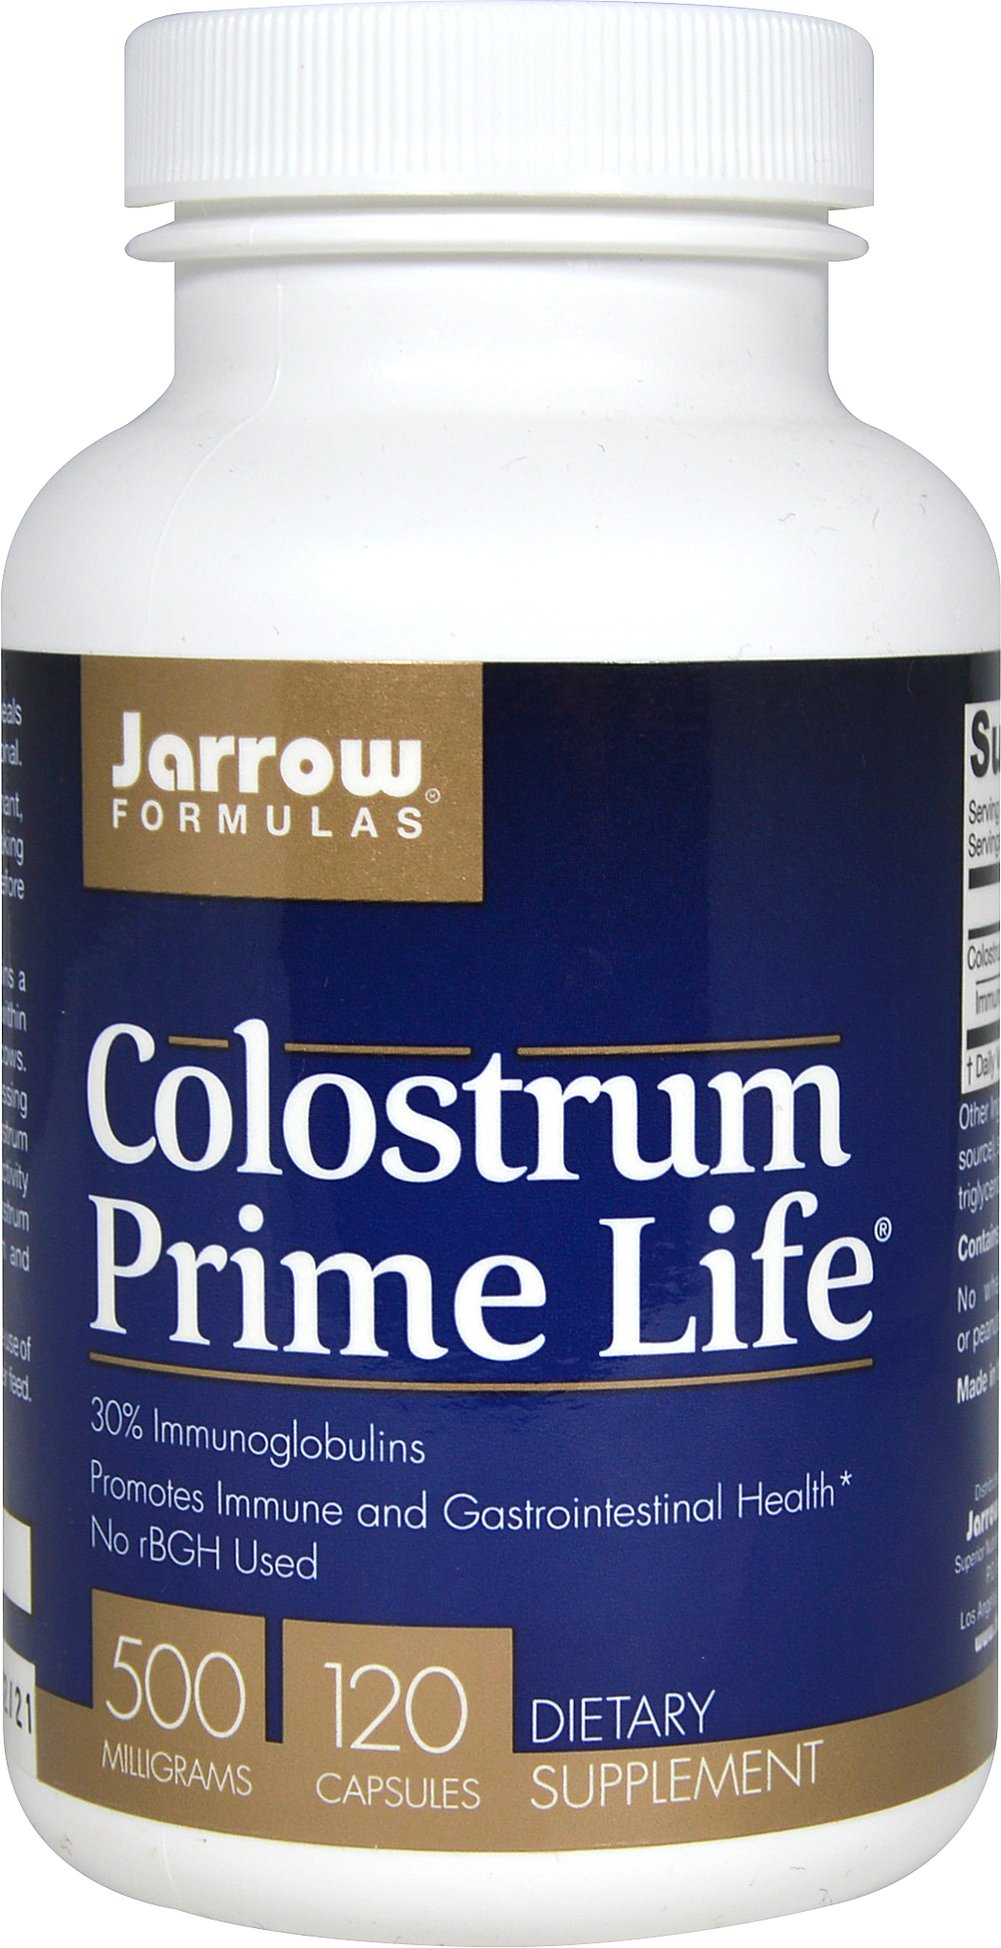 Colostrum Prime Life® 500 mg <p><strong>From the Manufacturer's Label:</strong></p><p>Jarrow Formulas® Colostrum Prime Life® contains a minimum of 35% immunoglobulins, double the strength of typical colostrum products, because it comes from the first milking.</p><p><strong>Colostrum Prime Life® Colostrum </strong>is collected within 12 hours of calving from American, pasture-fed cows. The colostrum undergoes low-temper